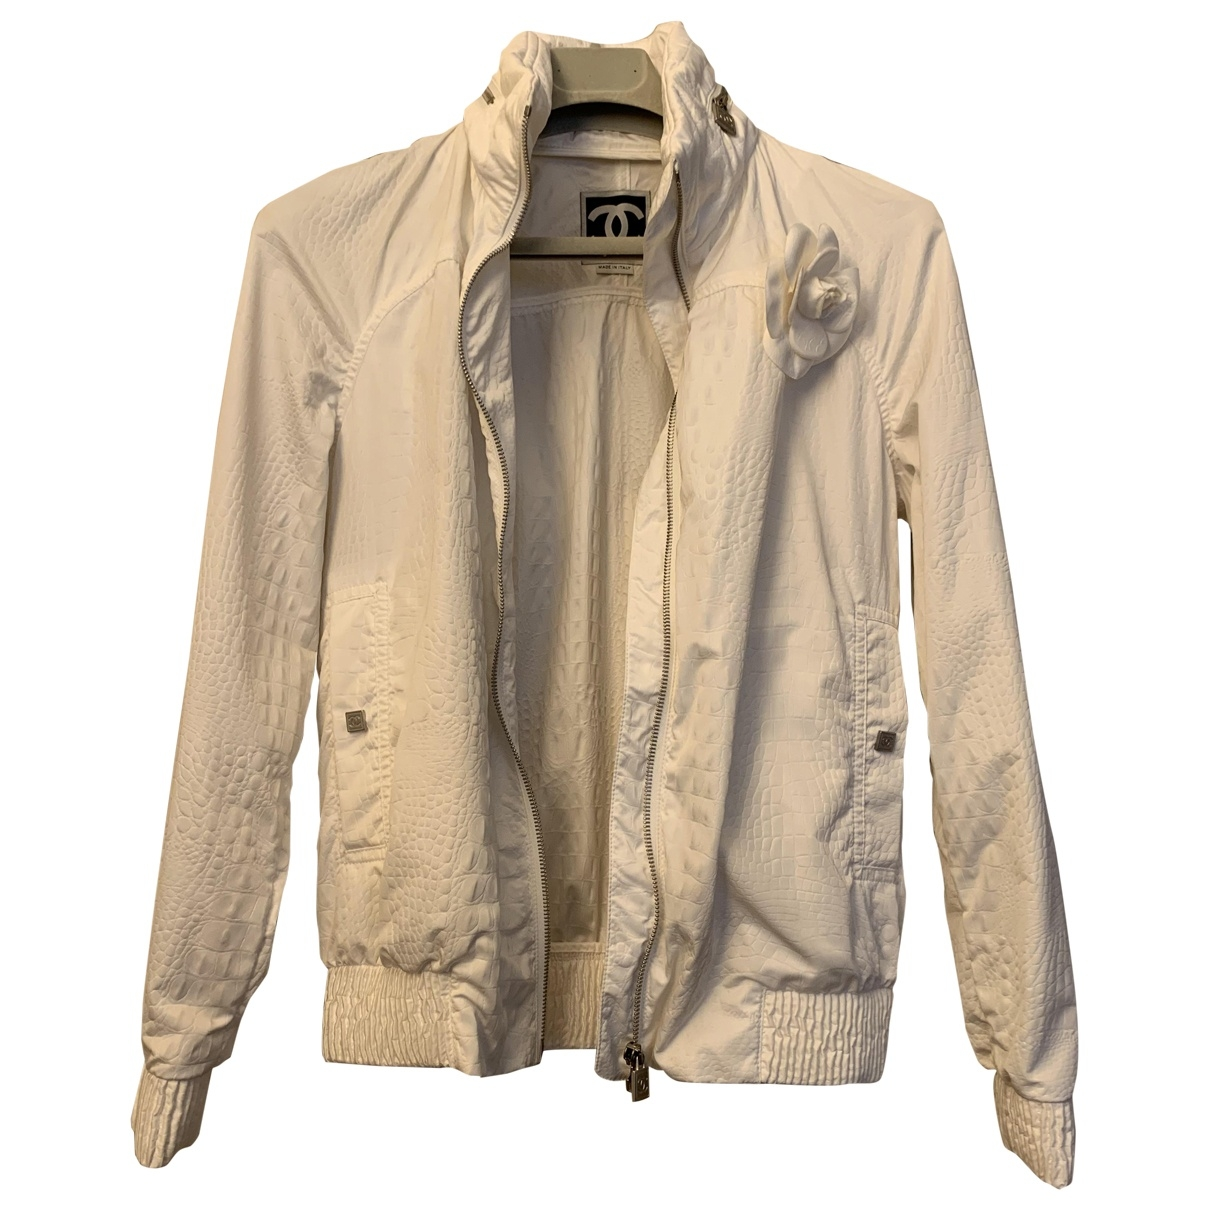 Chanel \N White jacket for Women 38 FR